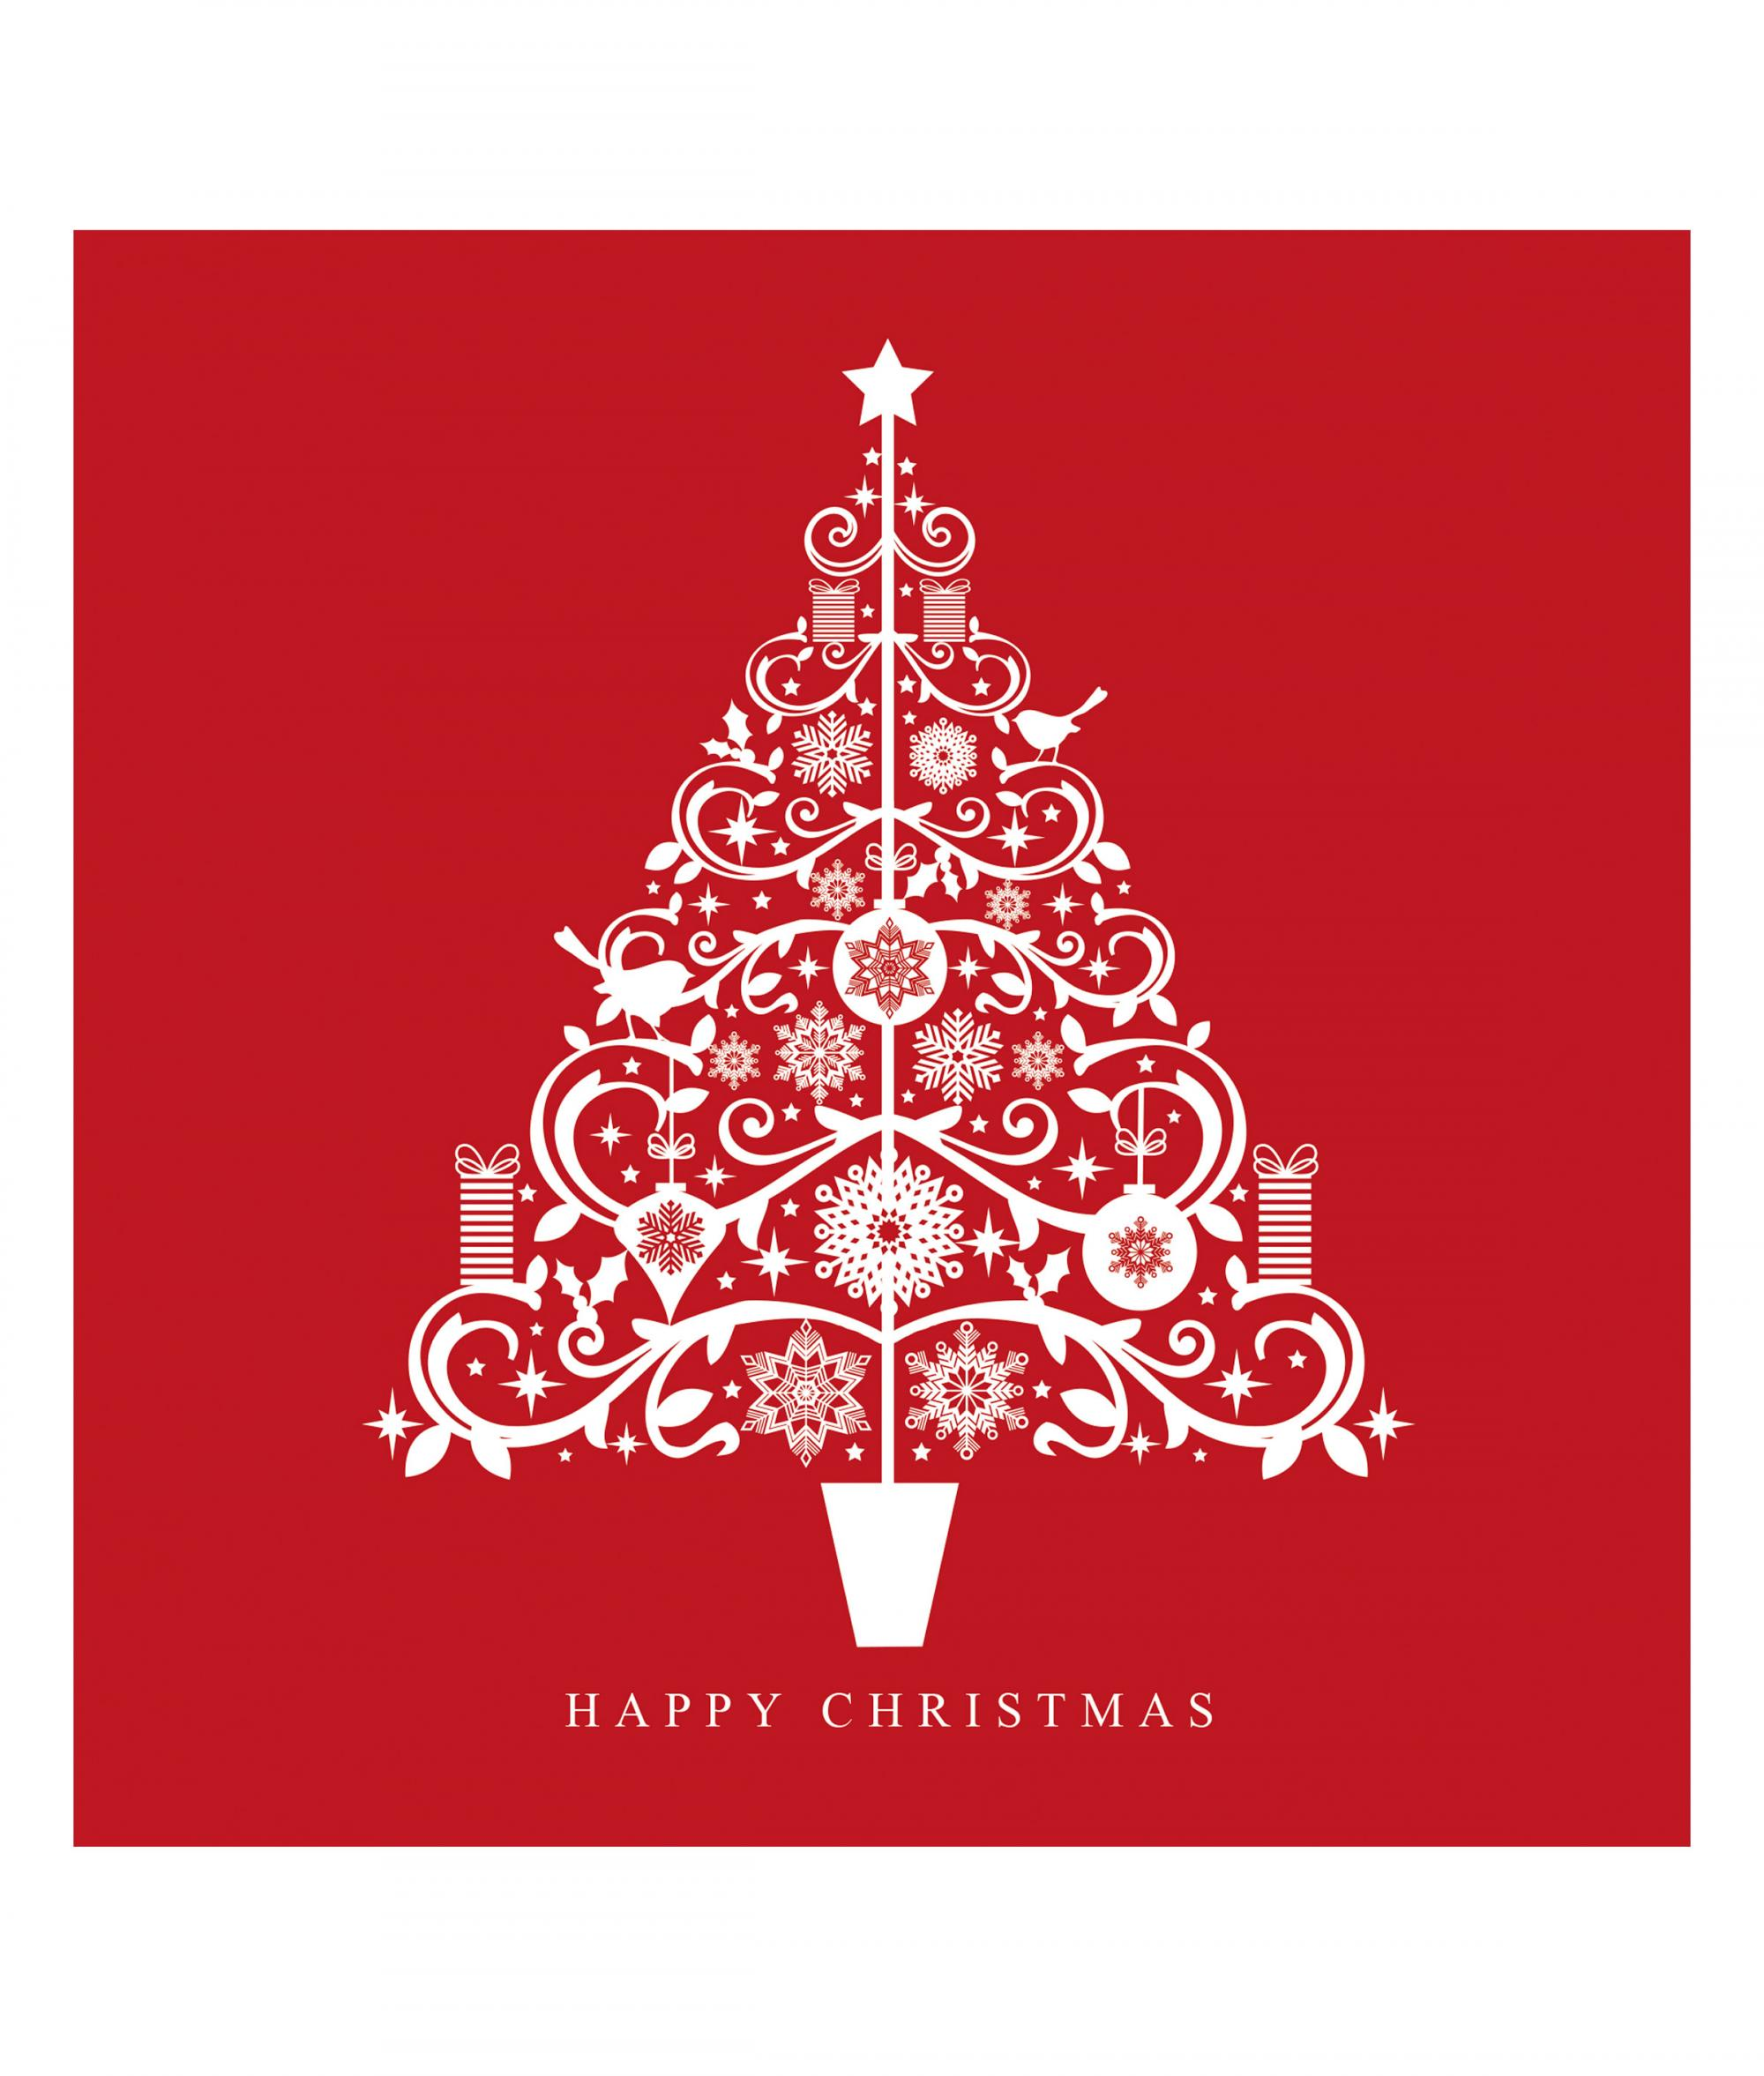 Photo Christmas Card Tiny Trees Christmas Card Pack Of 10 Cancer Research Uk Online